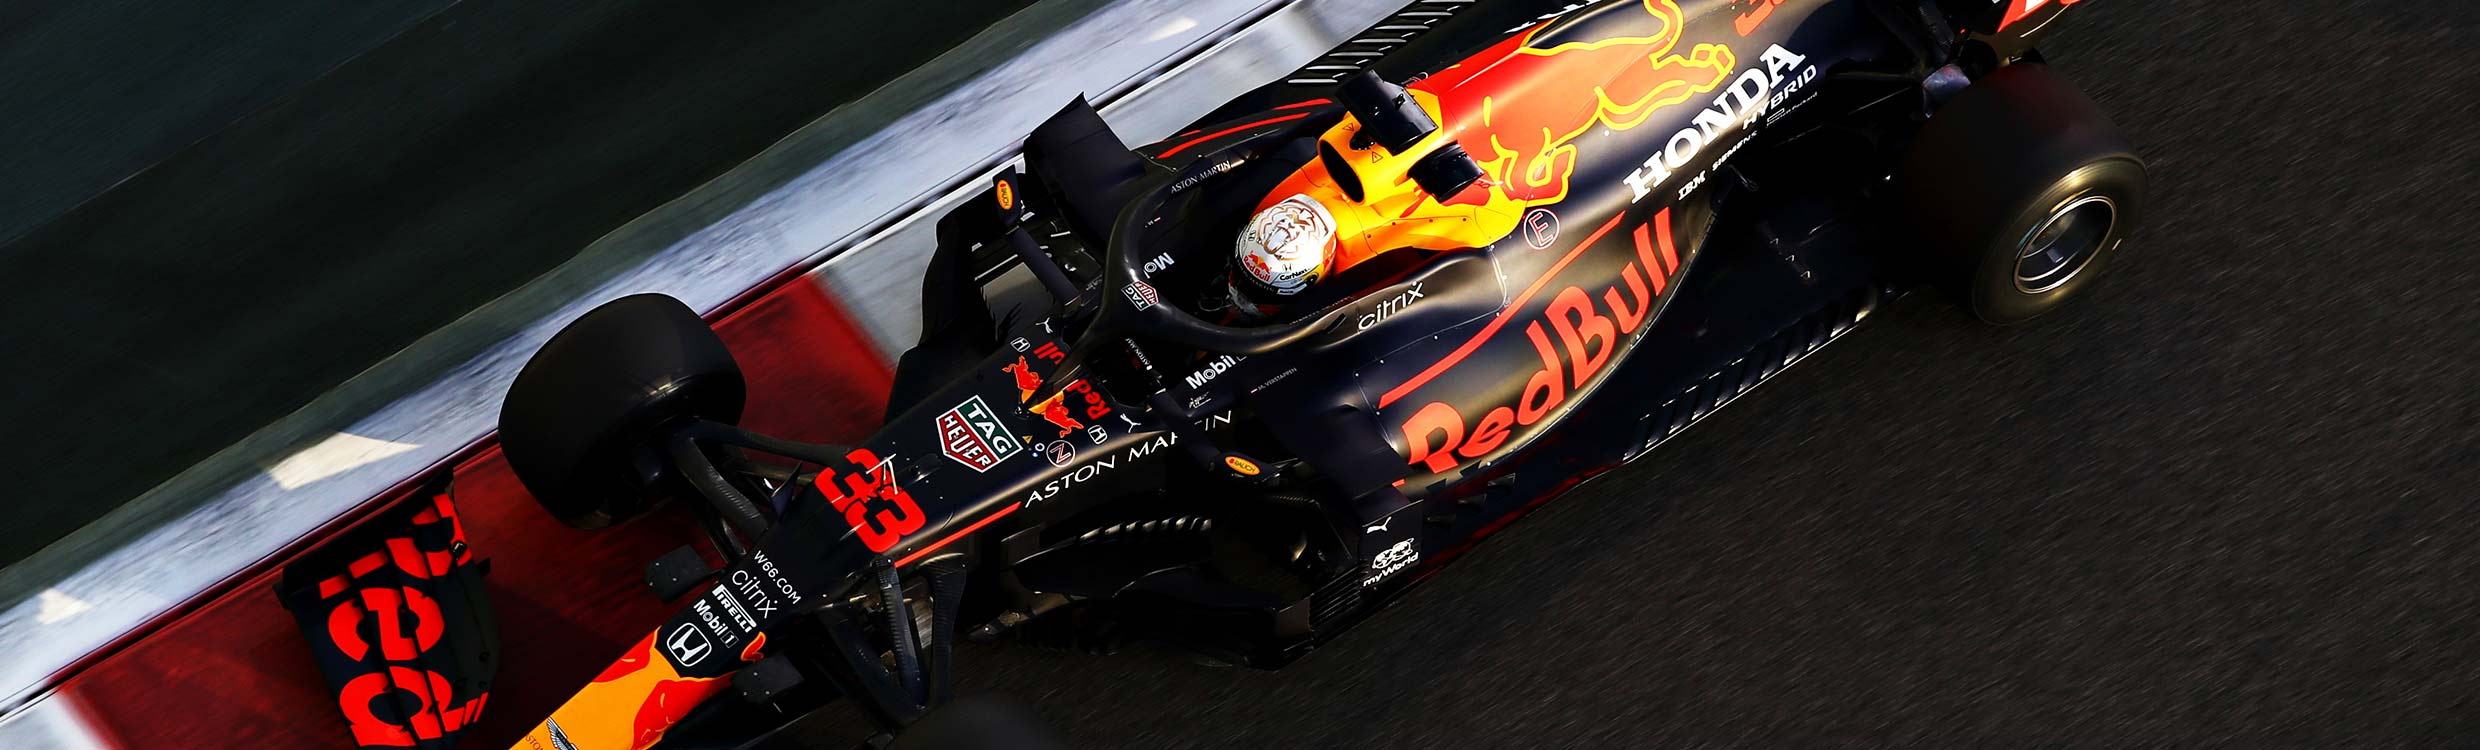 A top down view of a Red Bull Racing formula 1 car during a grand prix